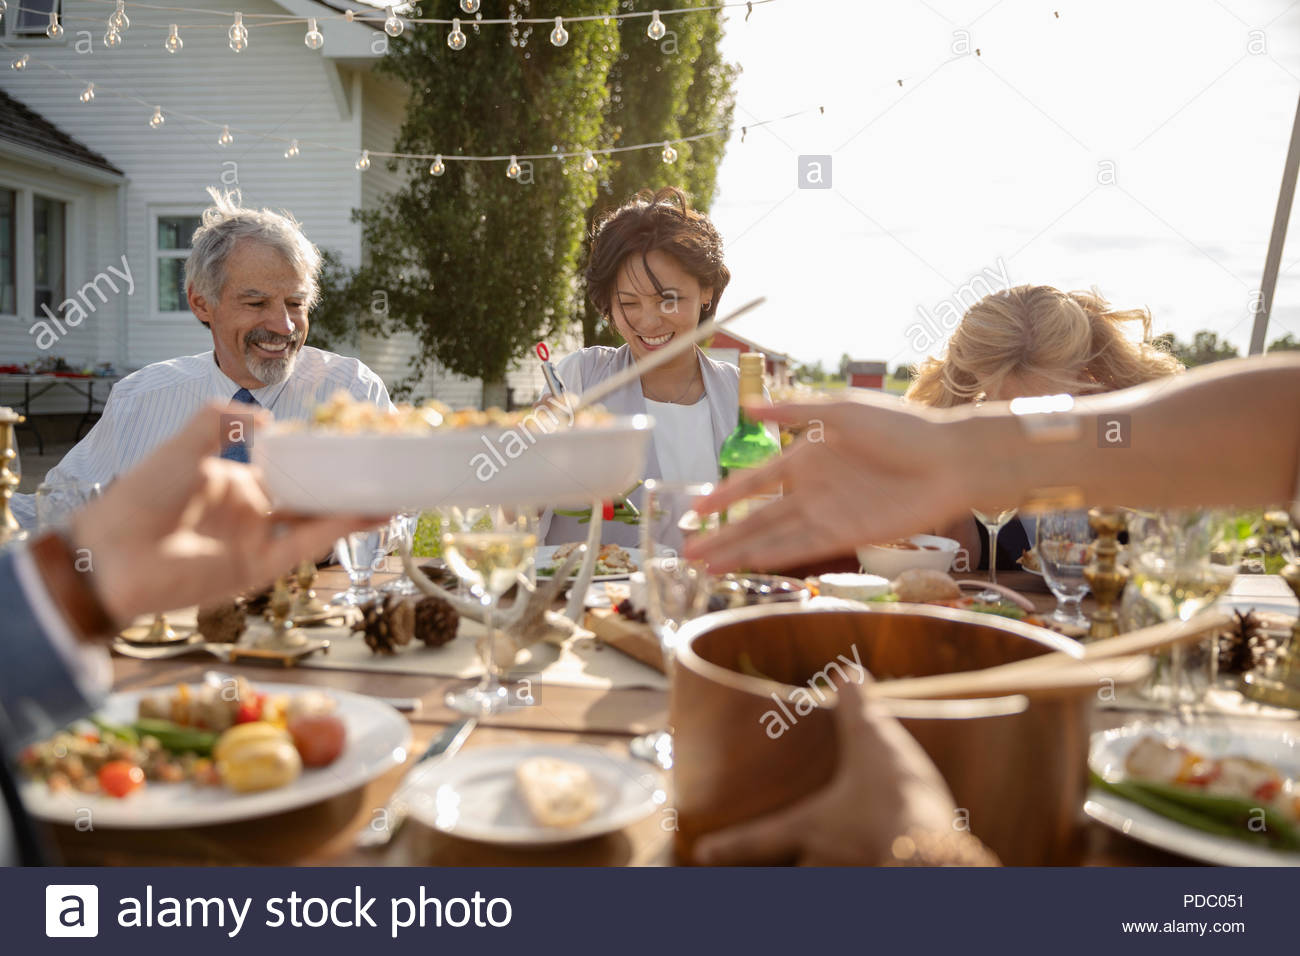 Friends eating and drinking at wedding reception at sunny rural table - Stock Image